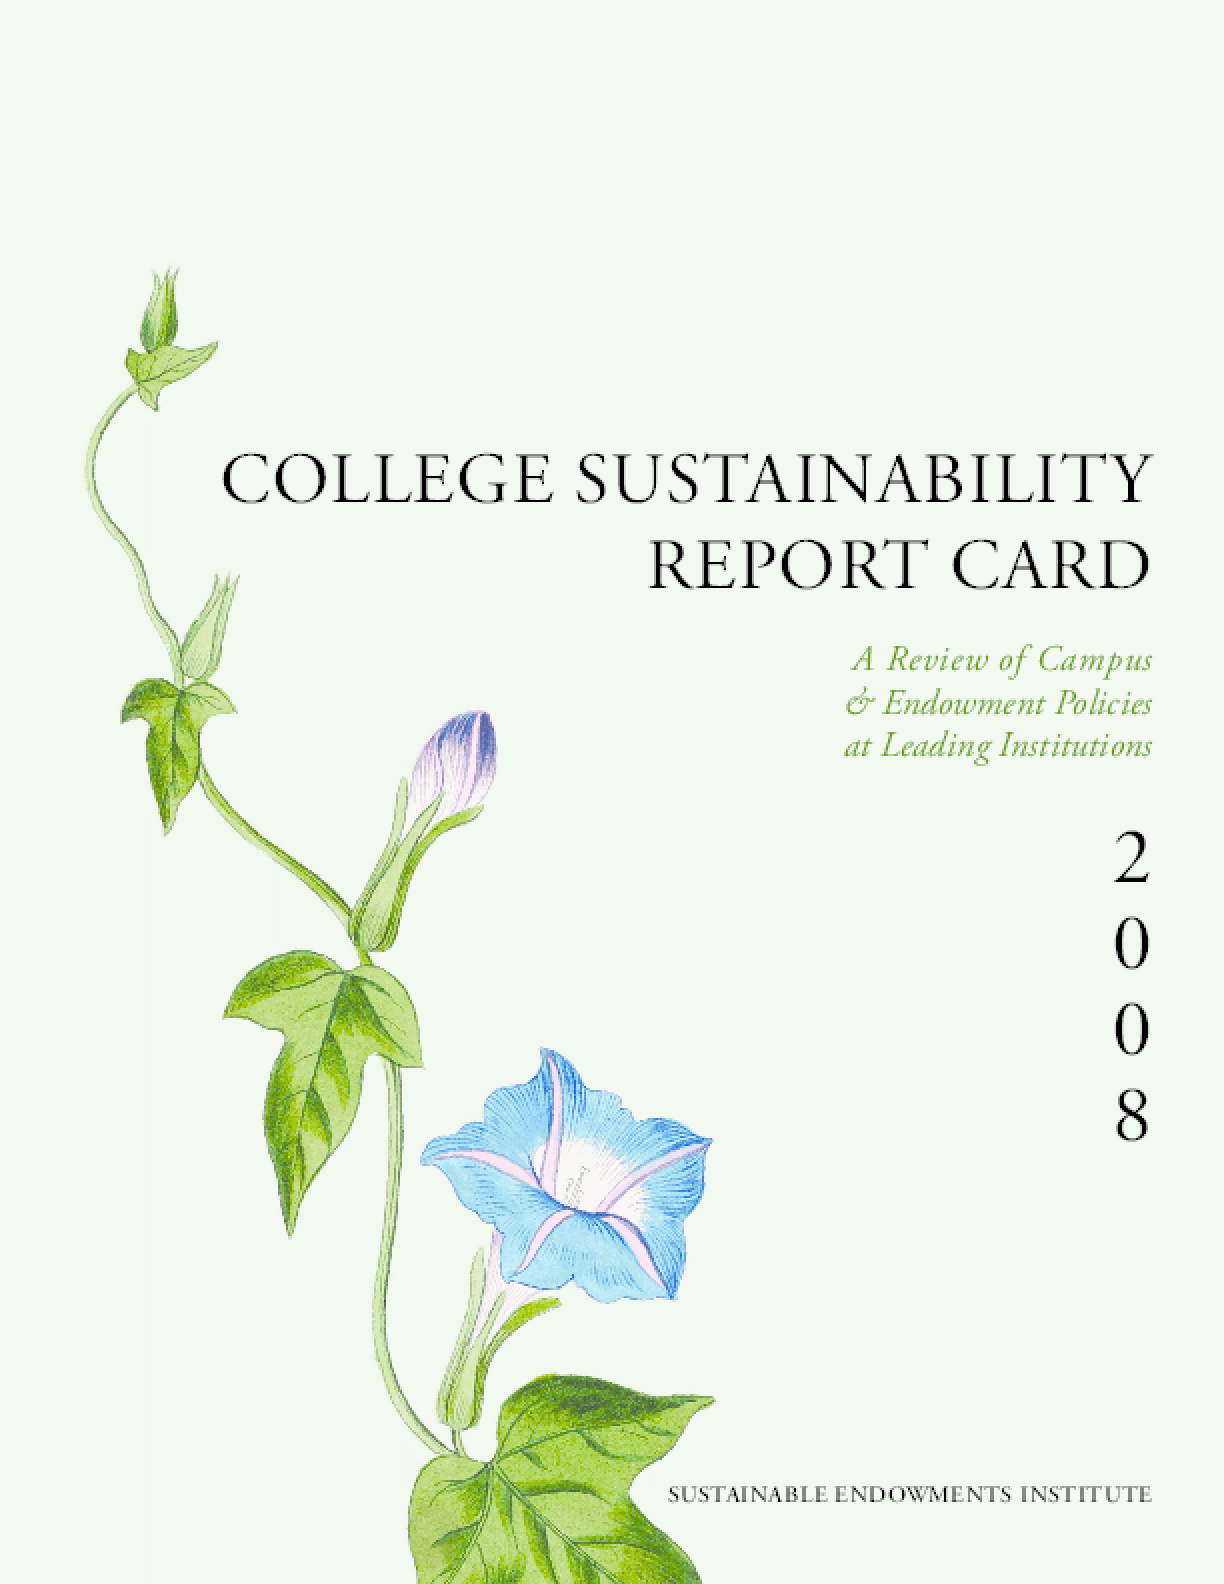 College Sustainability Report Card 2008: A Review of Campus & Endowment Policies at Leading Institutions